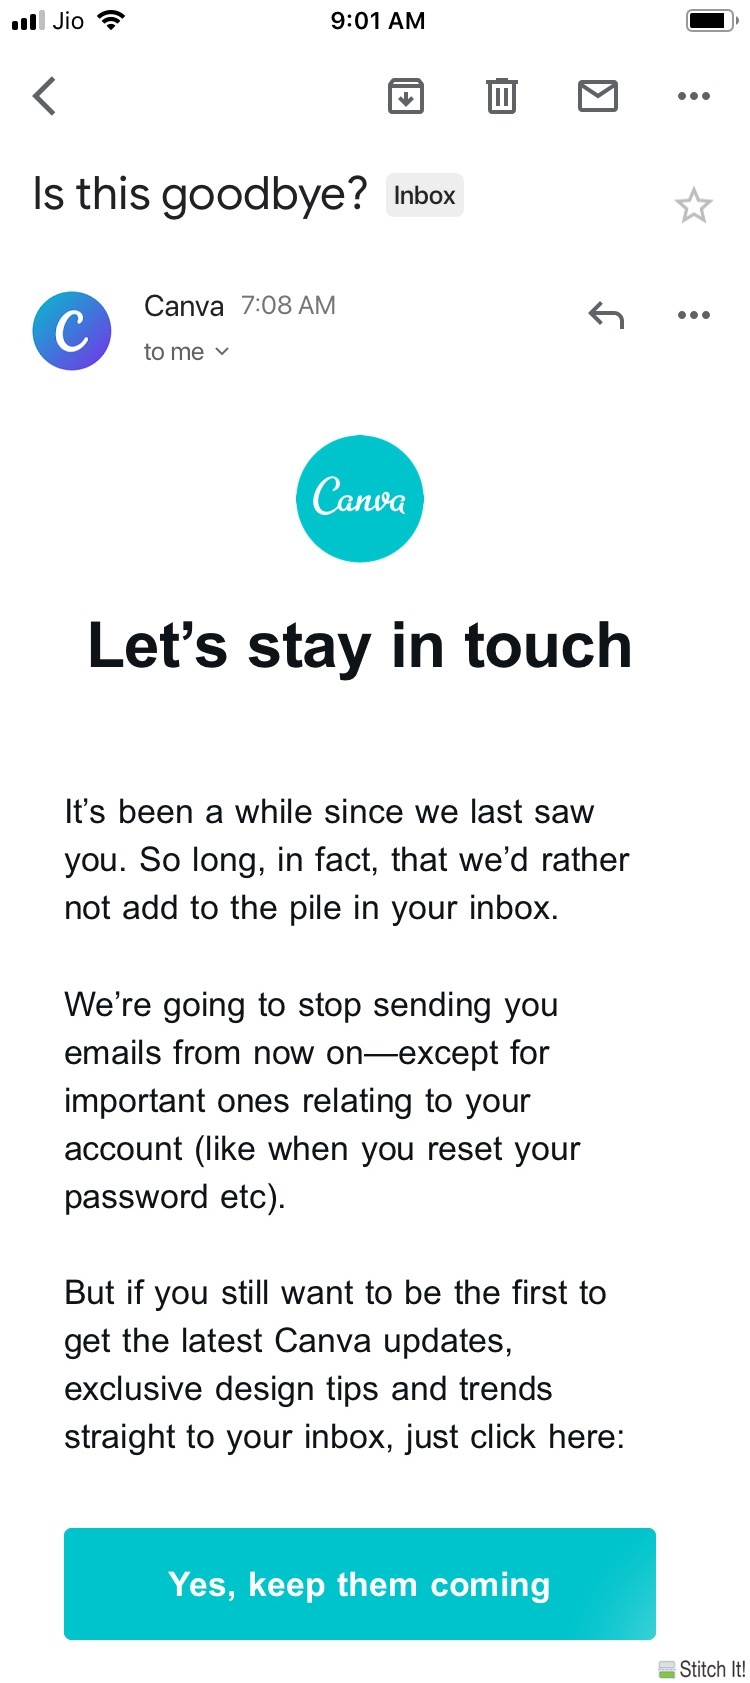 Brilliant Mailer Copy from Canva - Email Subscription